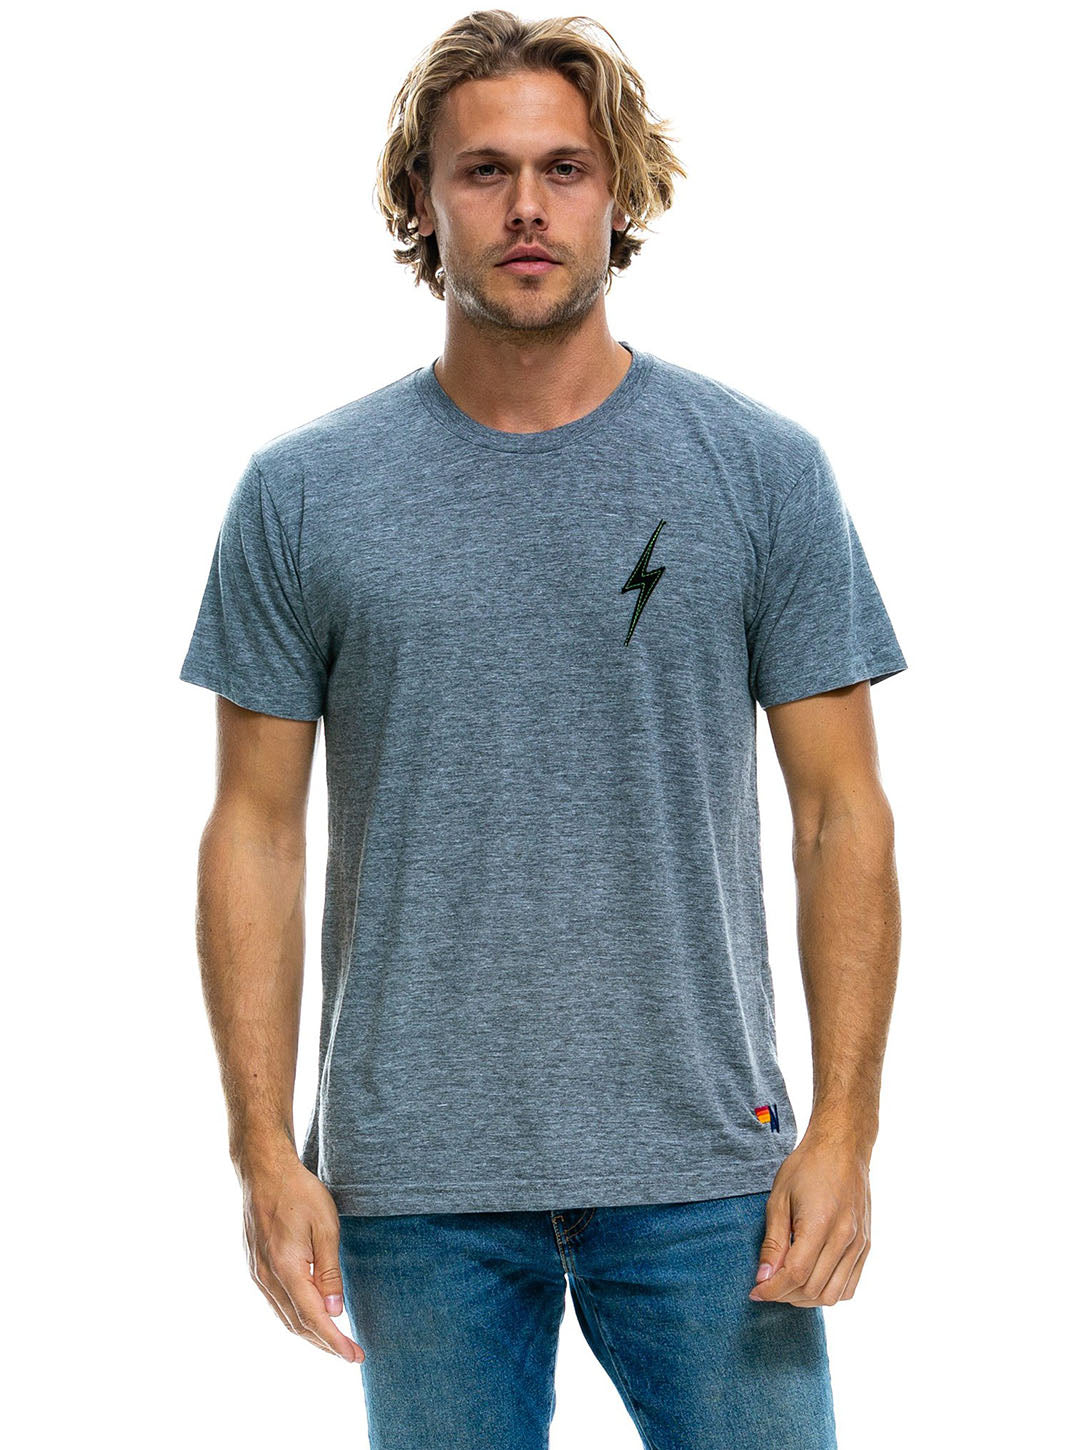 Bolt Stitch T-Shirt - Heather Grey-AVIATOR NATION-Over the Rainbow